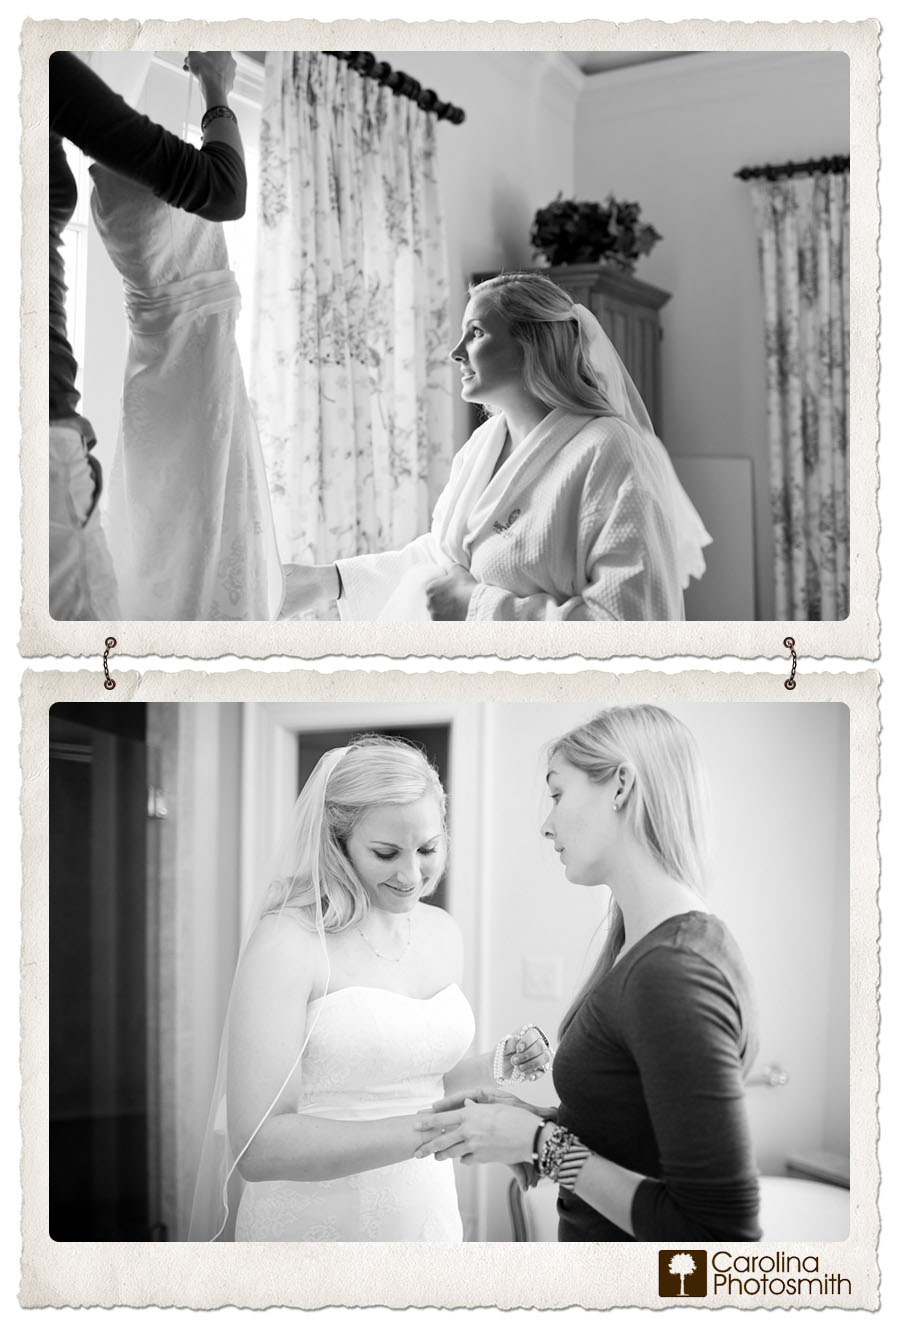 Sister assists bride with dress rehearsal for wedding portraits